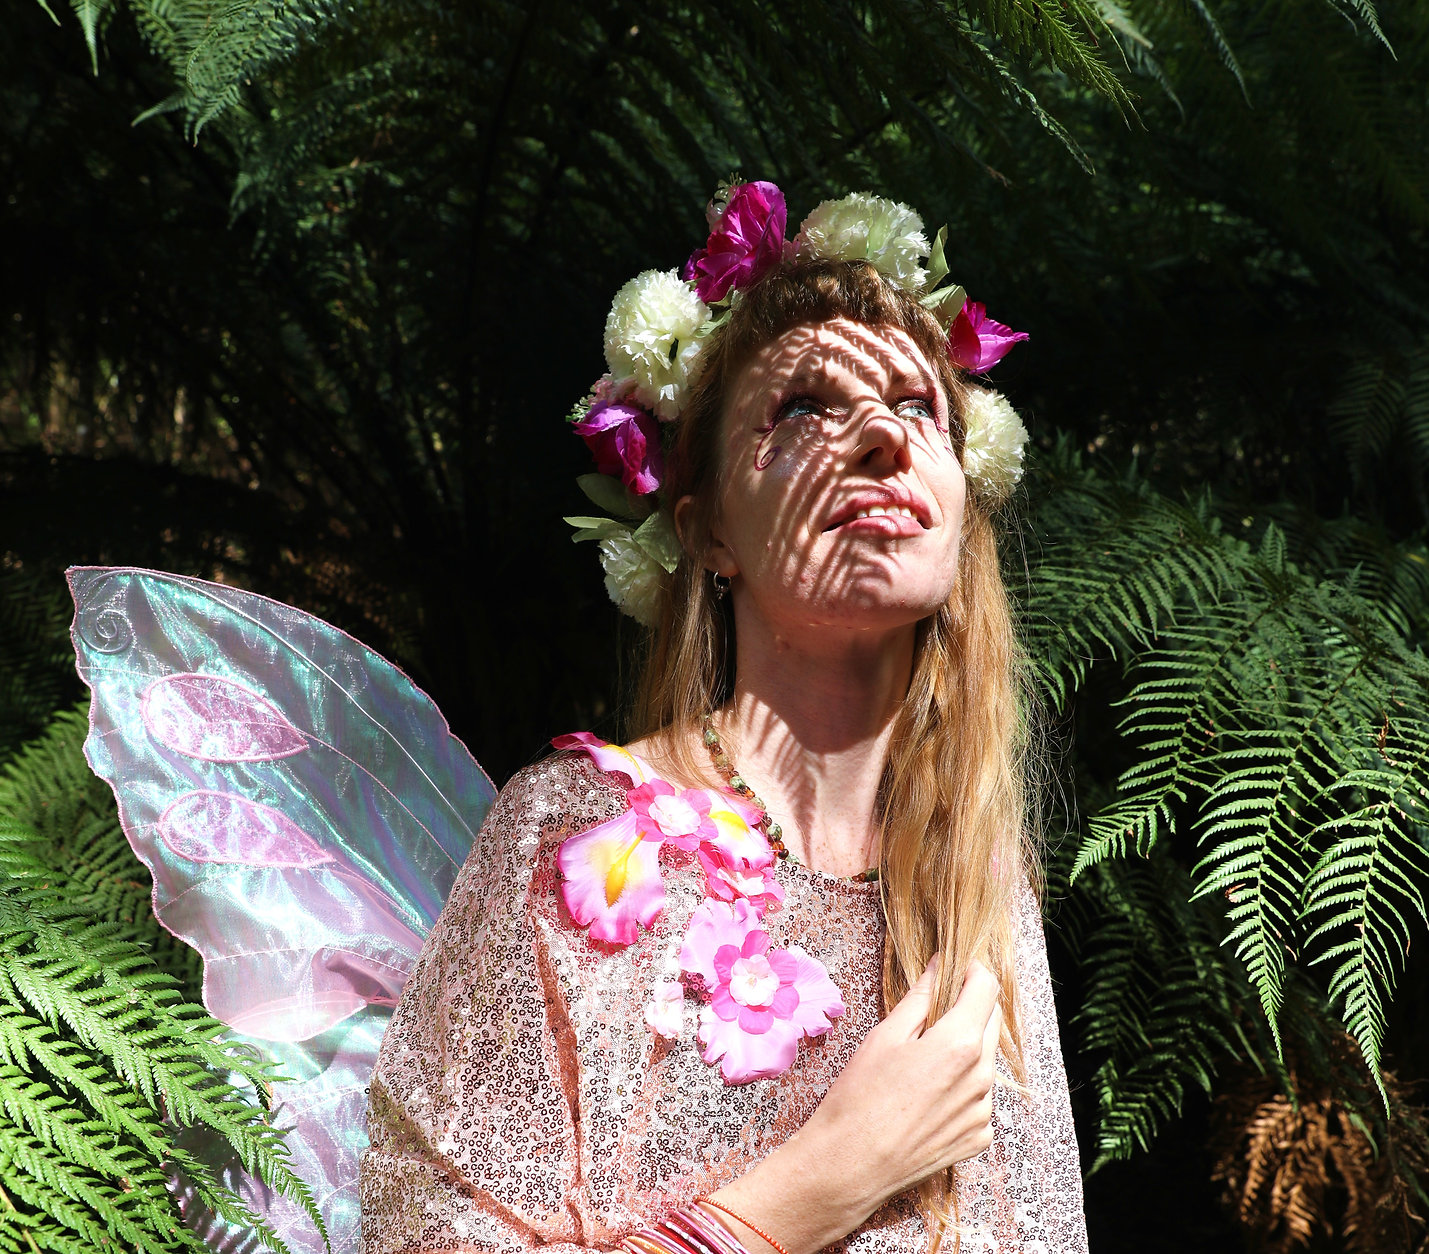 Fairy smiling and looking up in the forest, Faerie Sweetpea